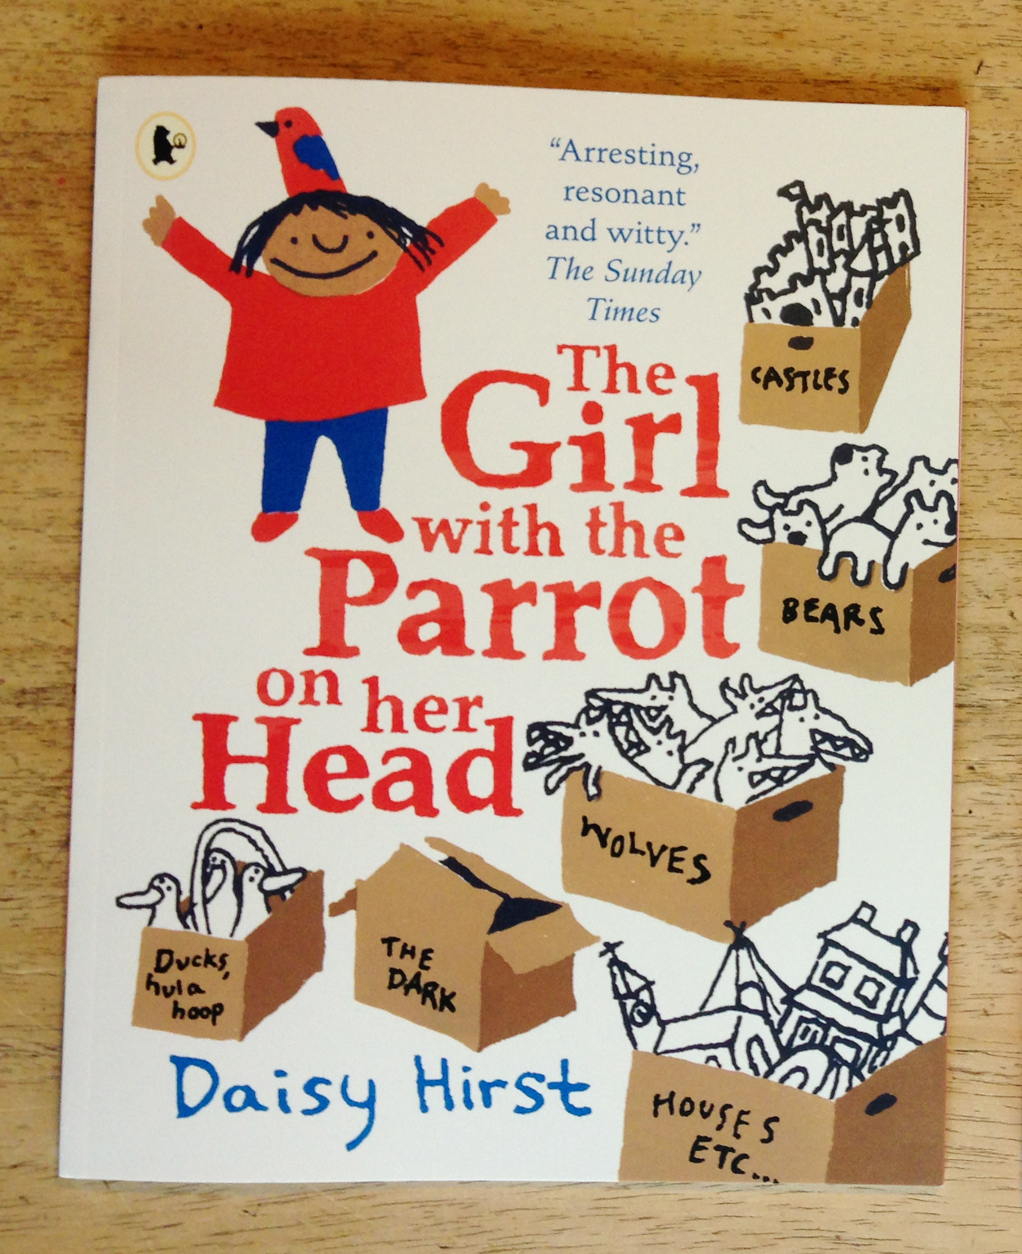 Paperback edition of The Girl with the Parrot on her Head